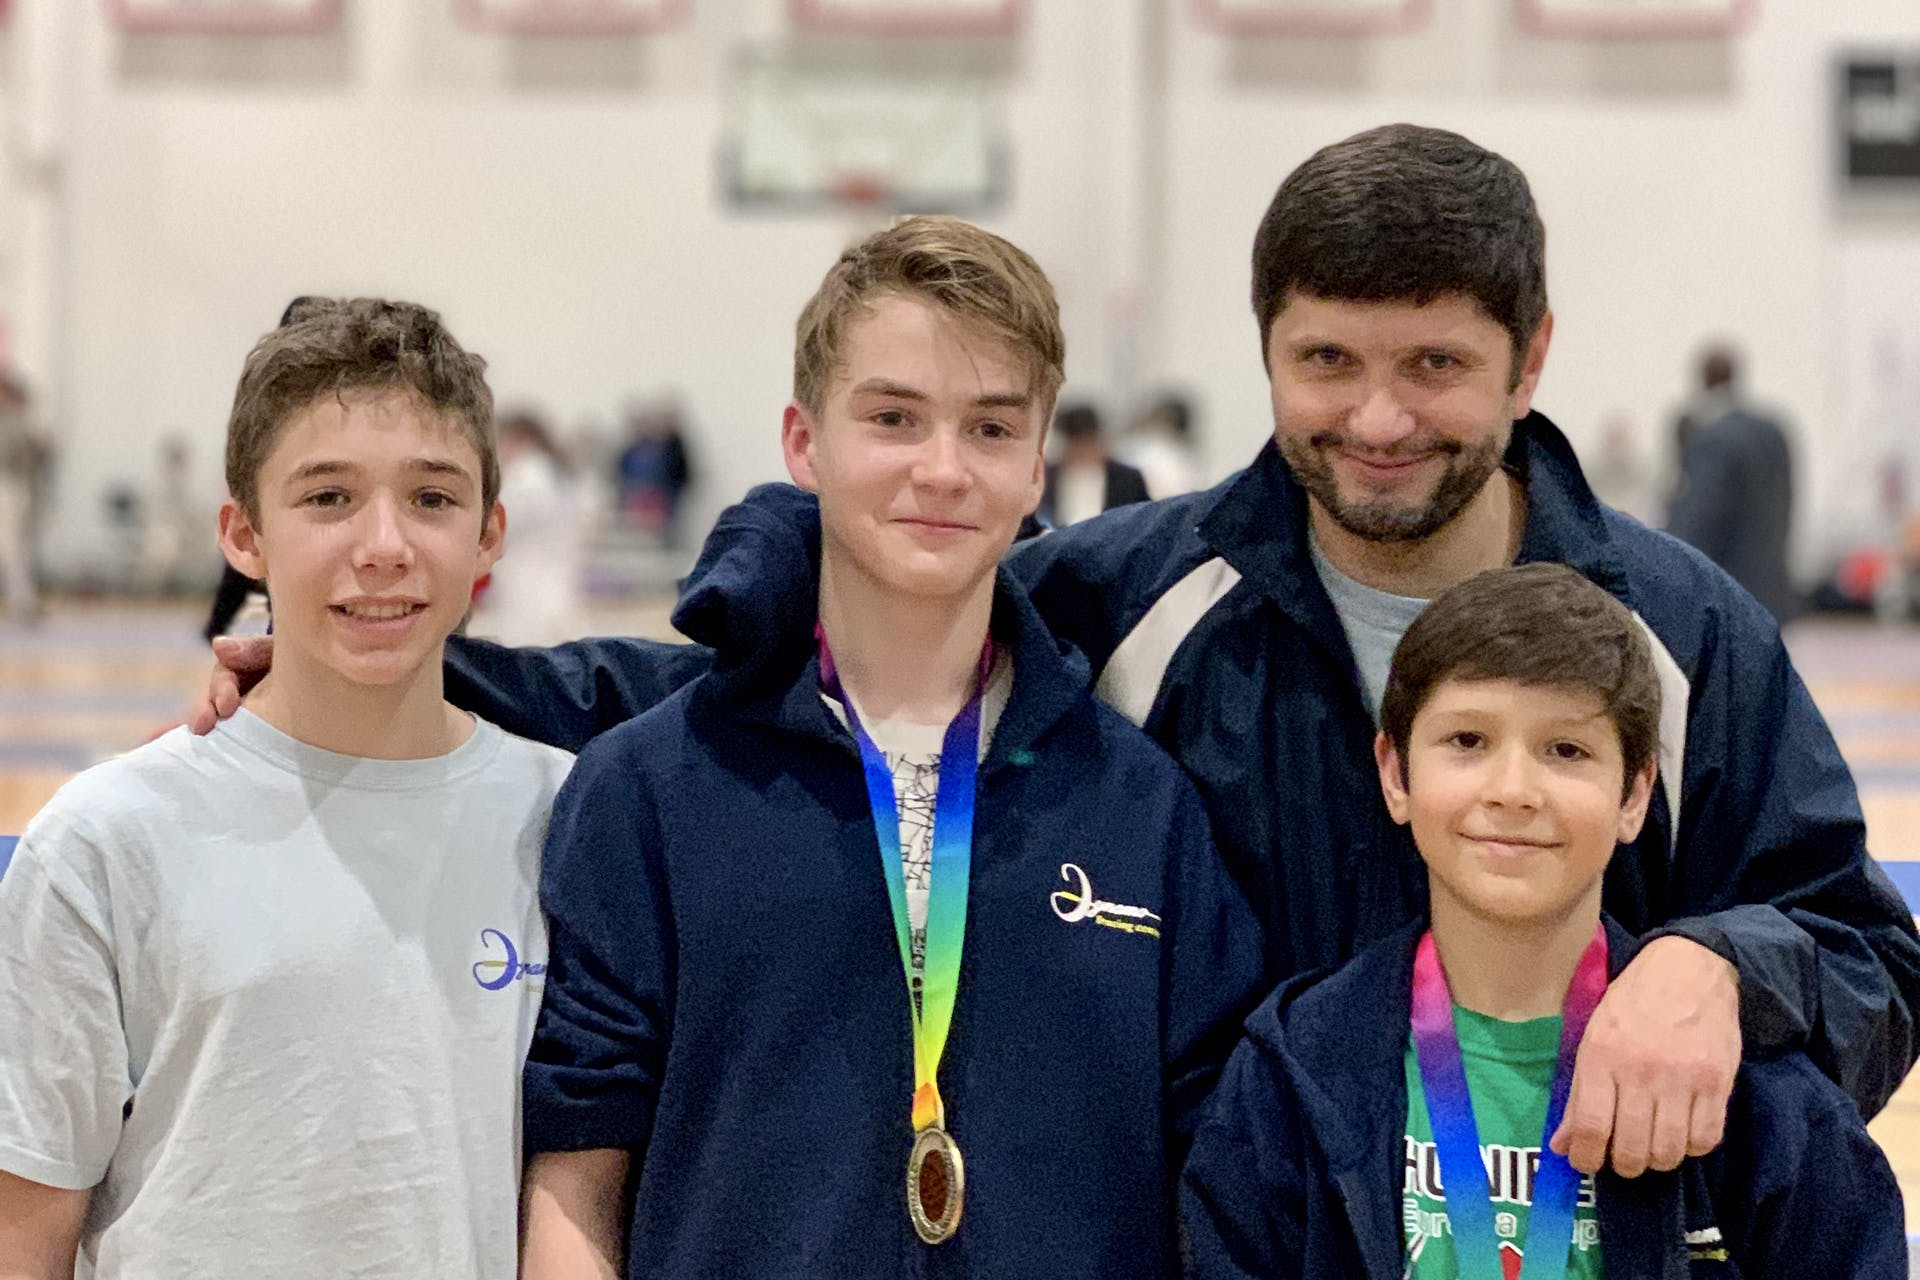 Sasha Shirpal and Daniel Kushkov making top 8 at Windy City Super Youth Circuit 2019 (Chicago, IL). Alex Chterental made top 16 and earned national points.